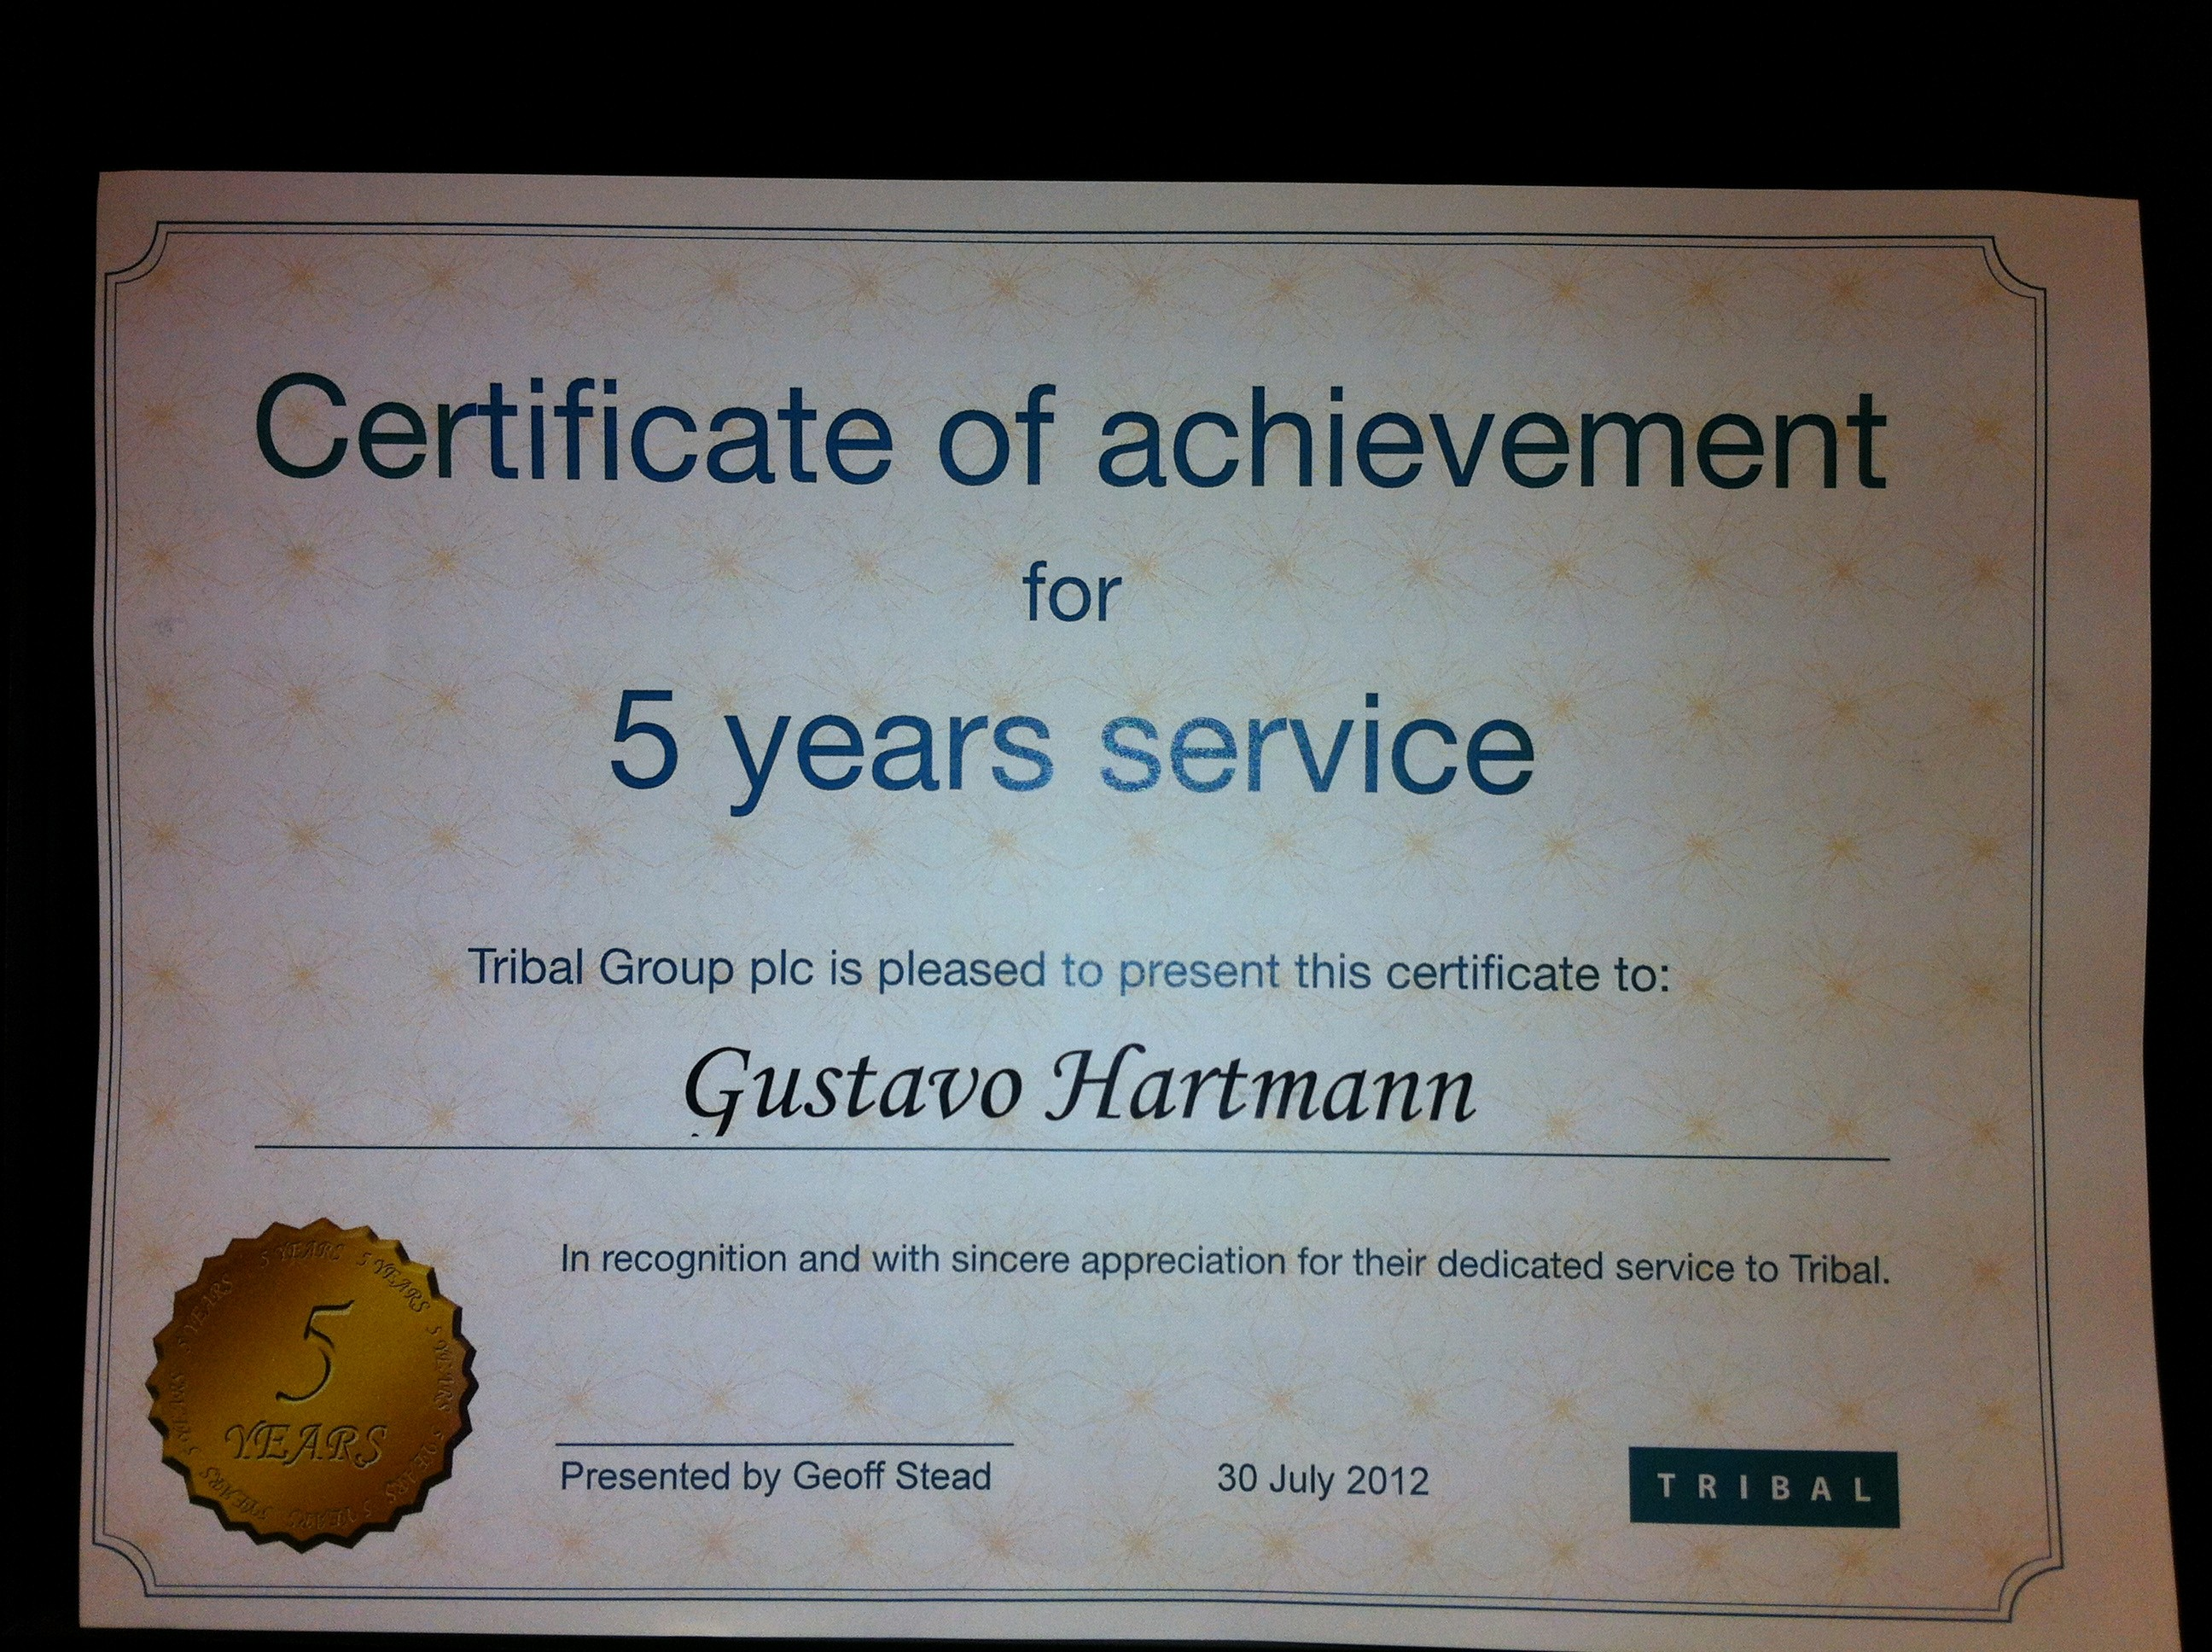 10 Years Of Service Certificate Elegant Tribal Tribalingua